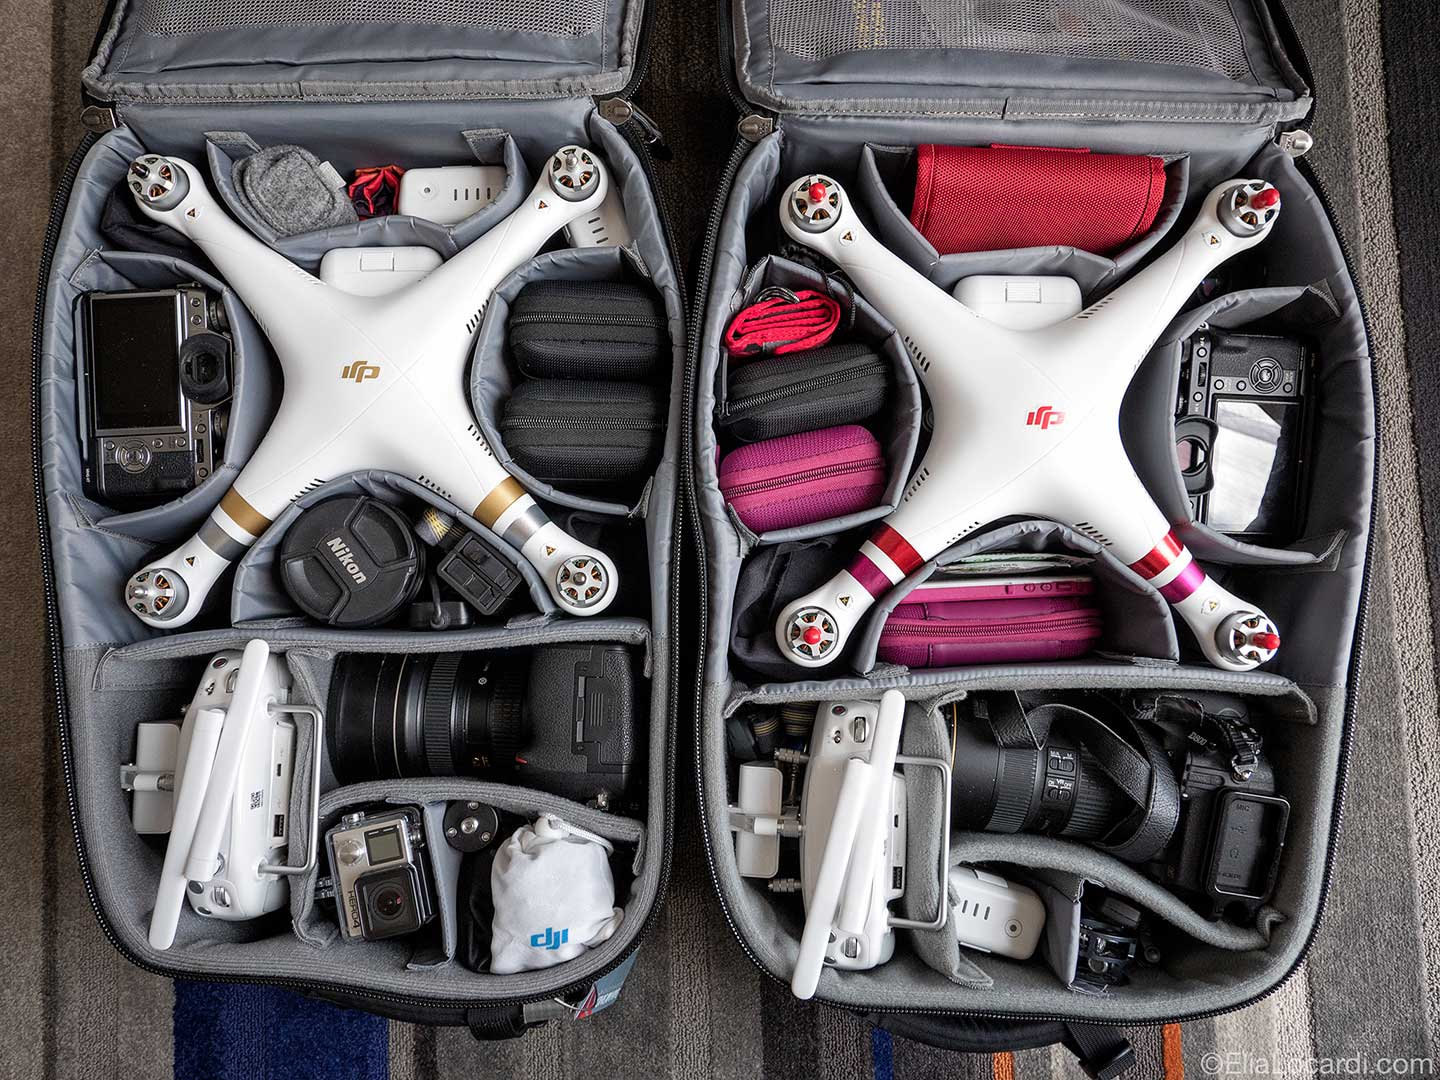 (His and hers travel solutions for the Phantom 3 Professionals.)